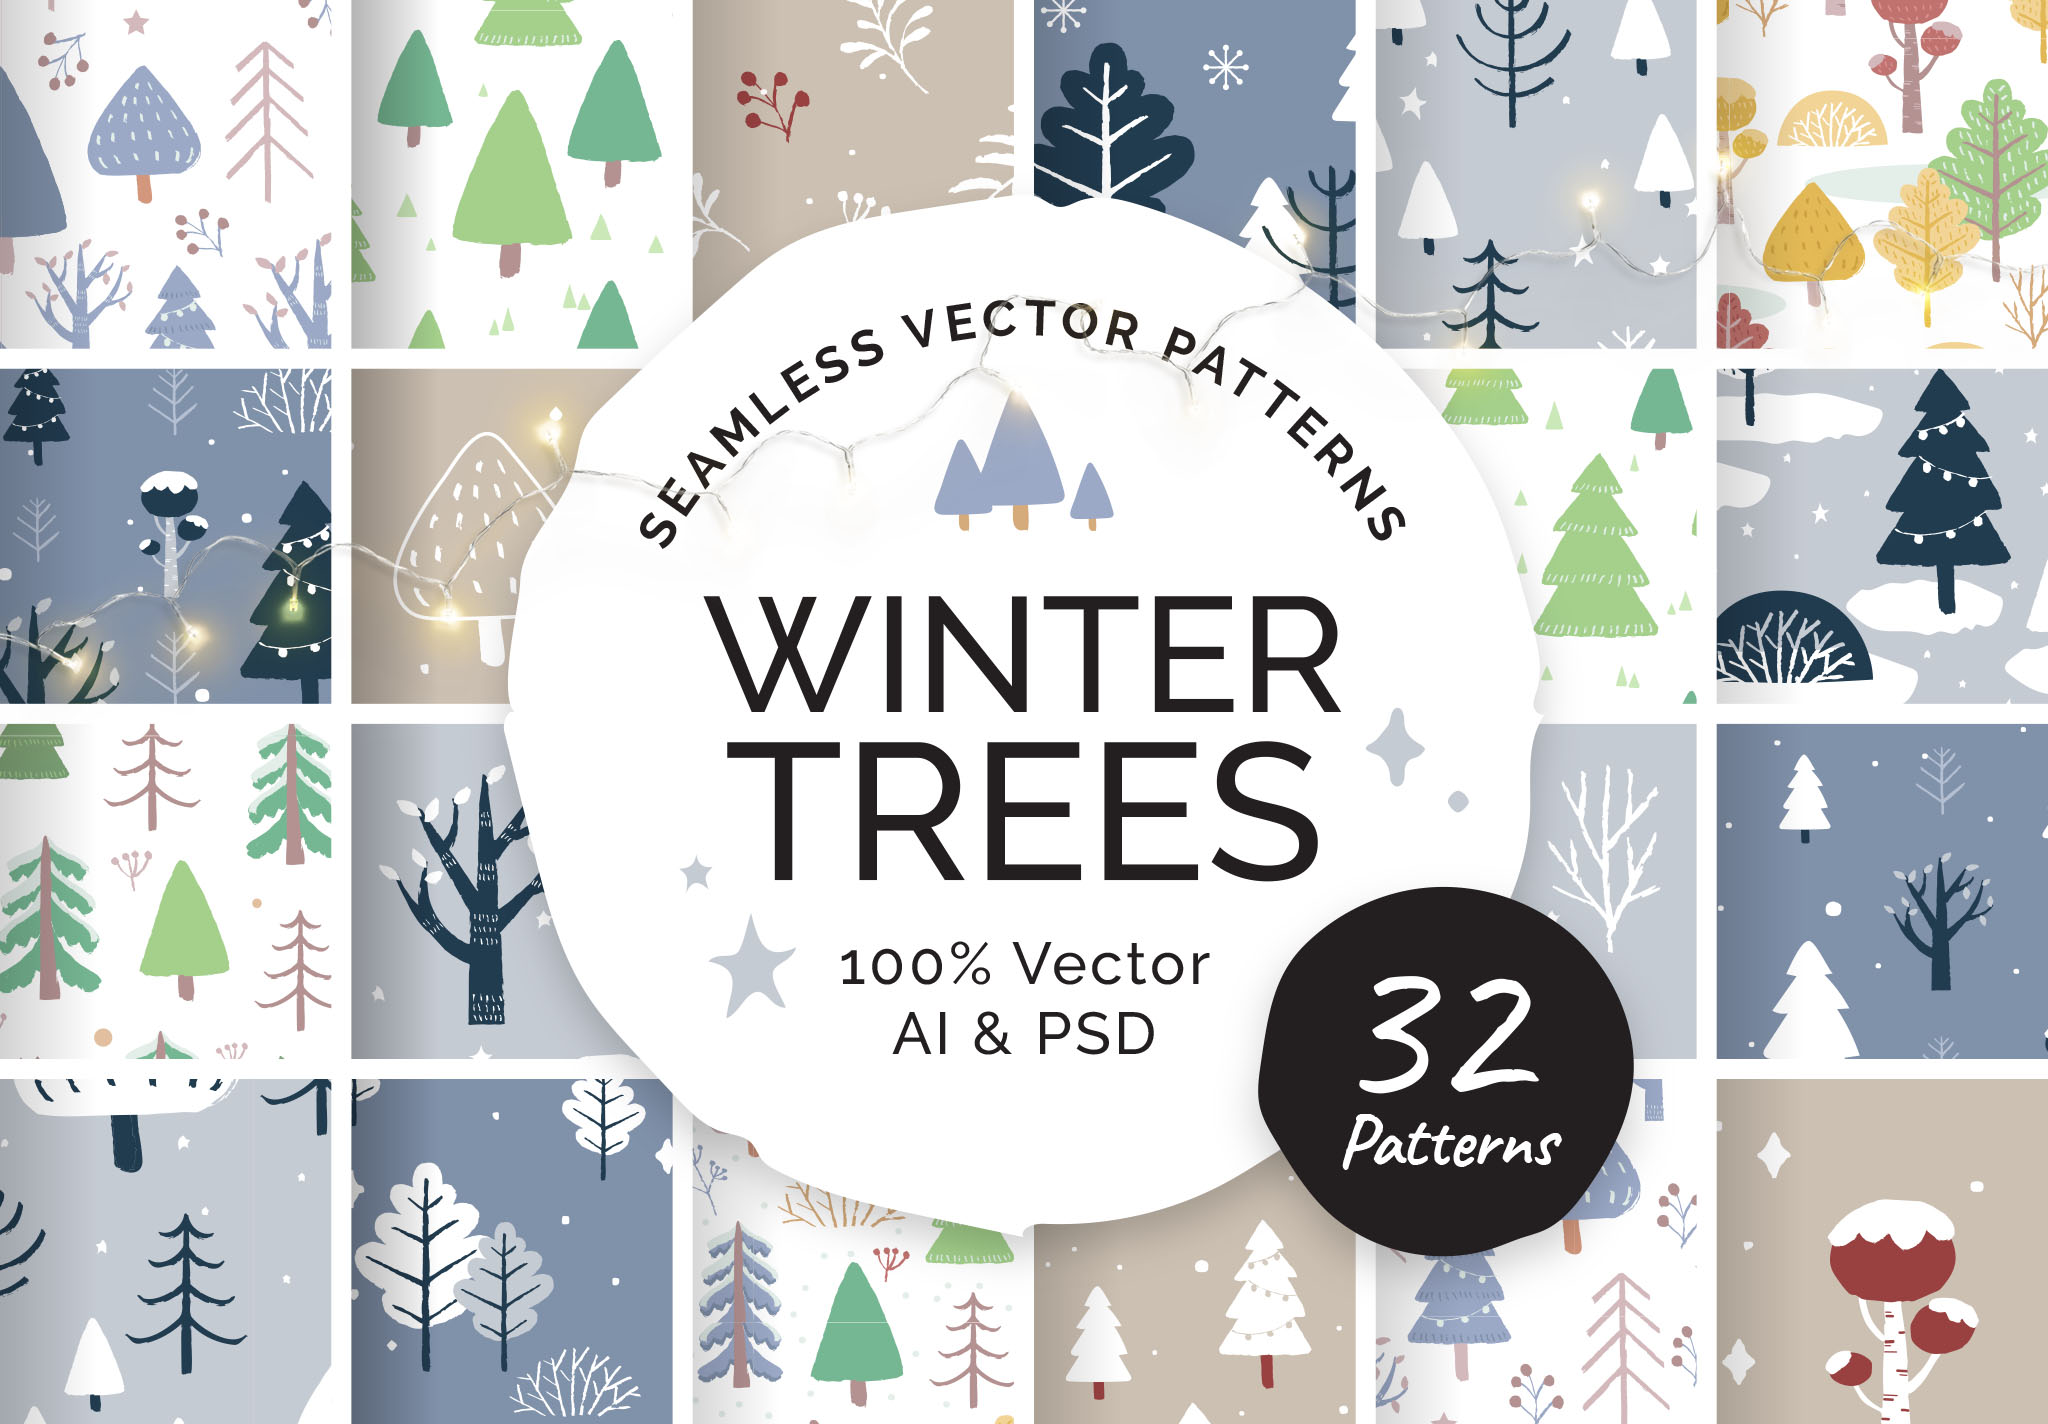 Winter Christmas Tree Patterns for Photoshop & Illustrator